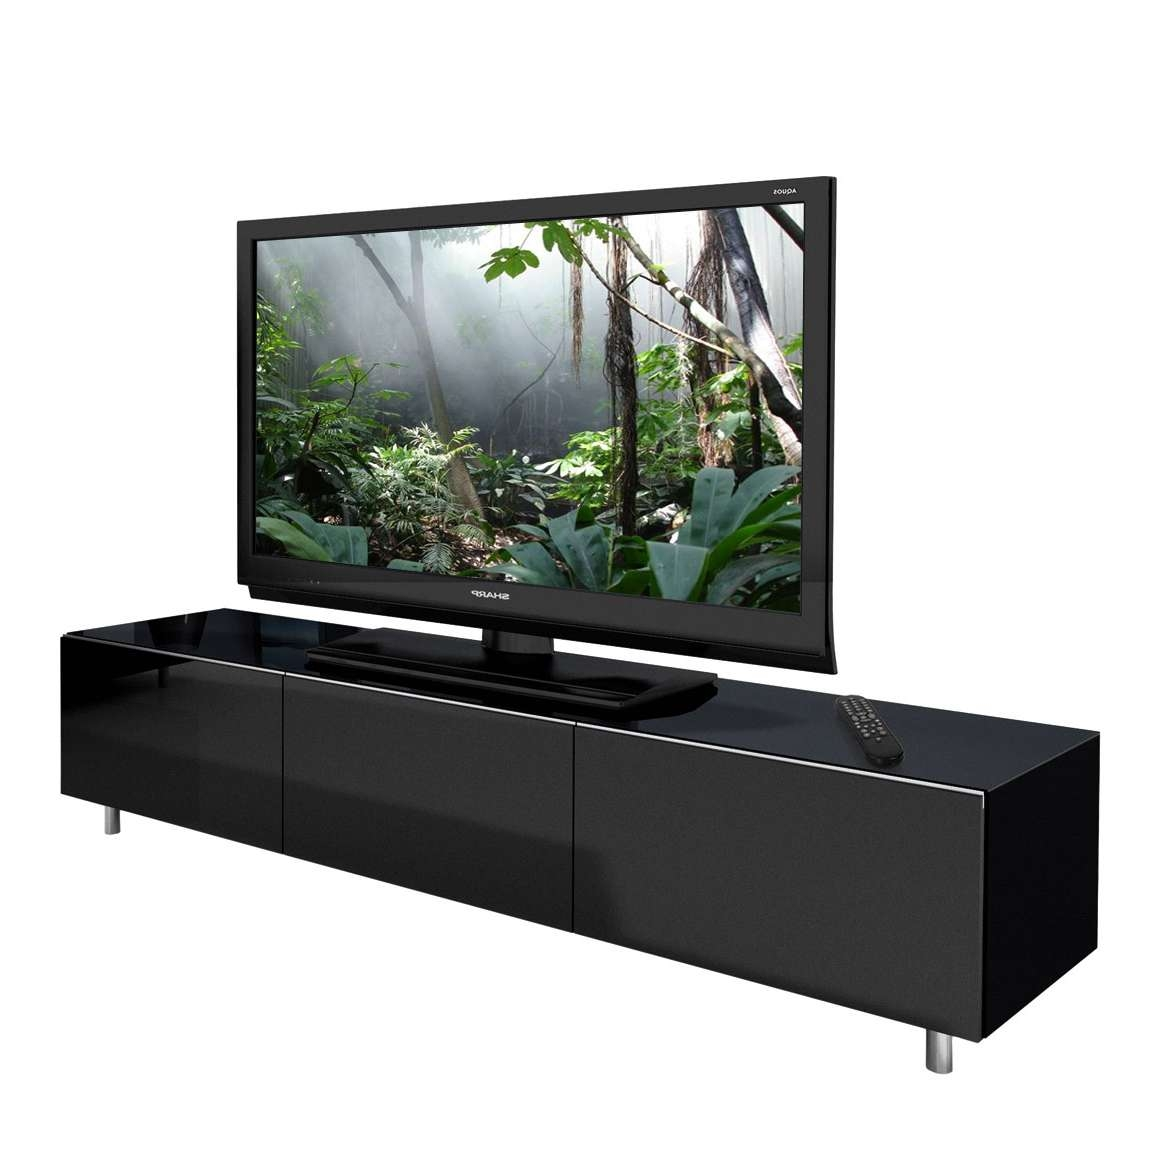 Spectral Just Racks Jrl1650S Gloss Black Tv Cabinet – Just Racks Intended For Shiny Black Tv Stands (View 10 of 15)